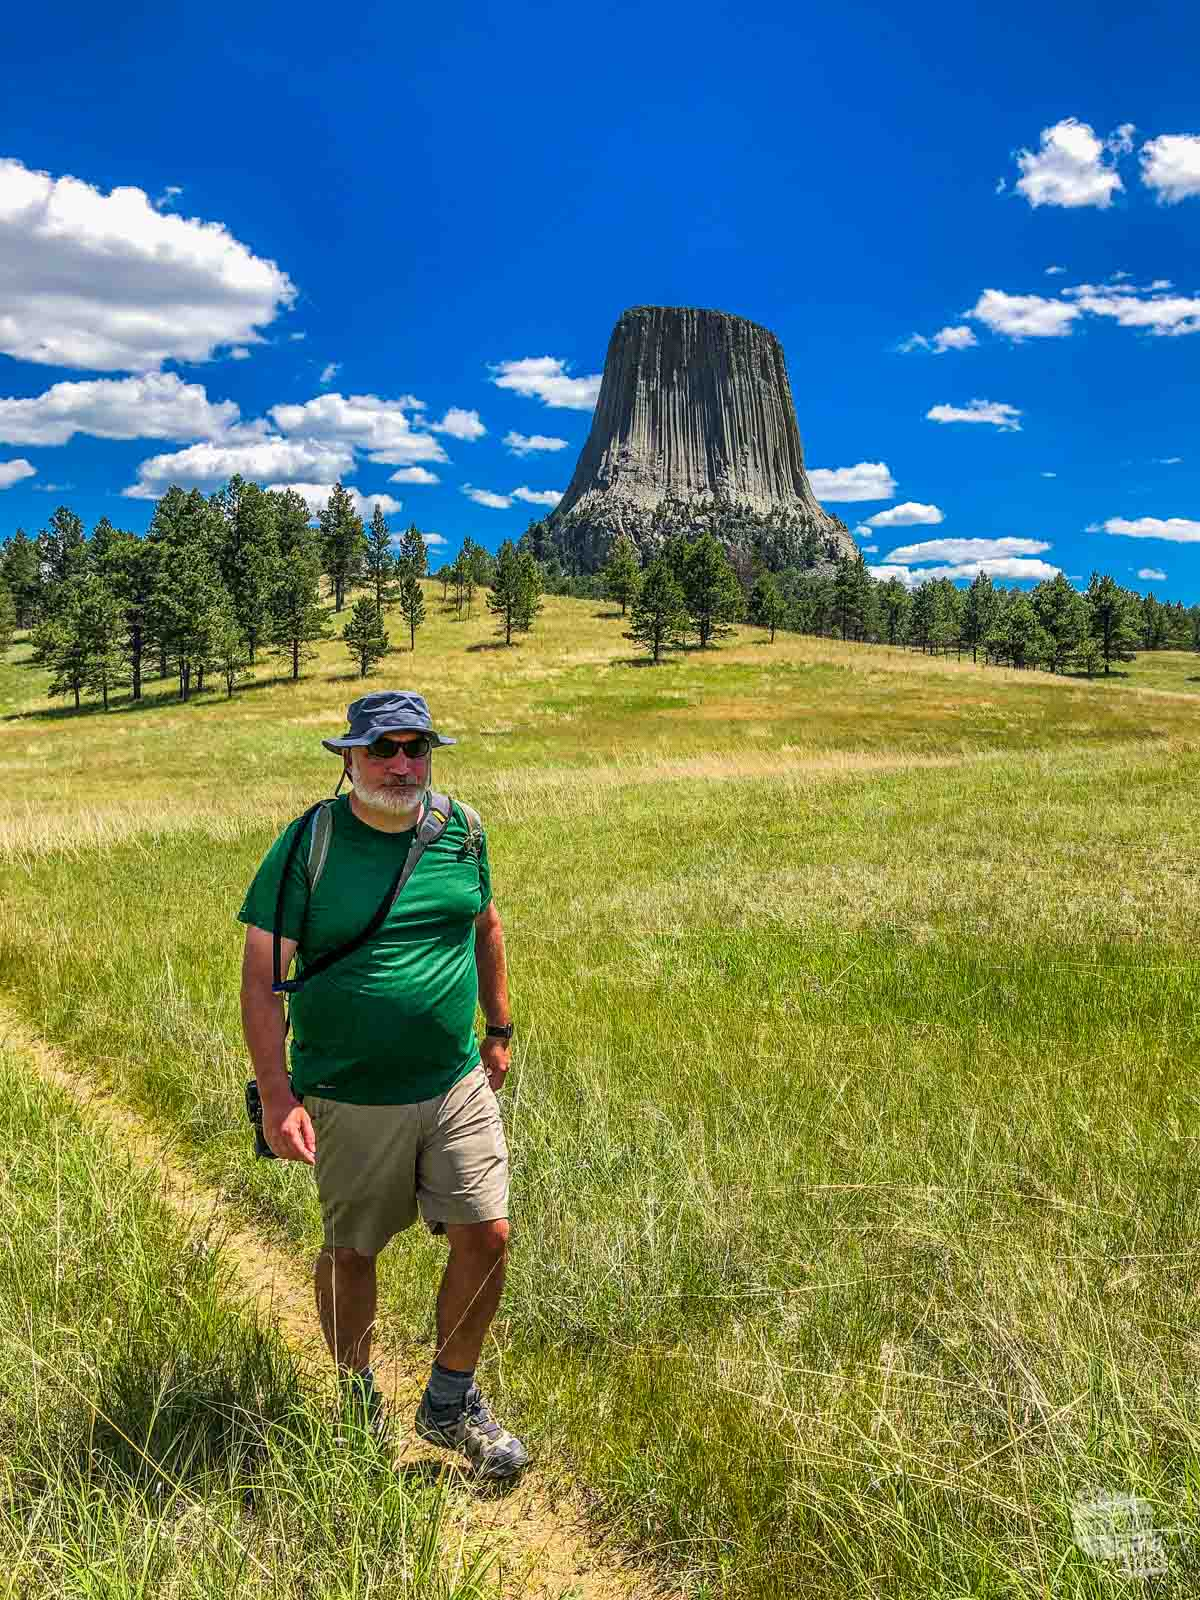 Grant hiking in the prairie with Devils Tower looming behind him.